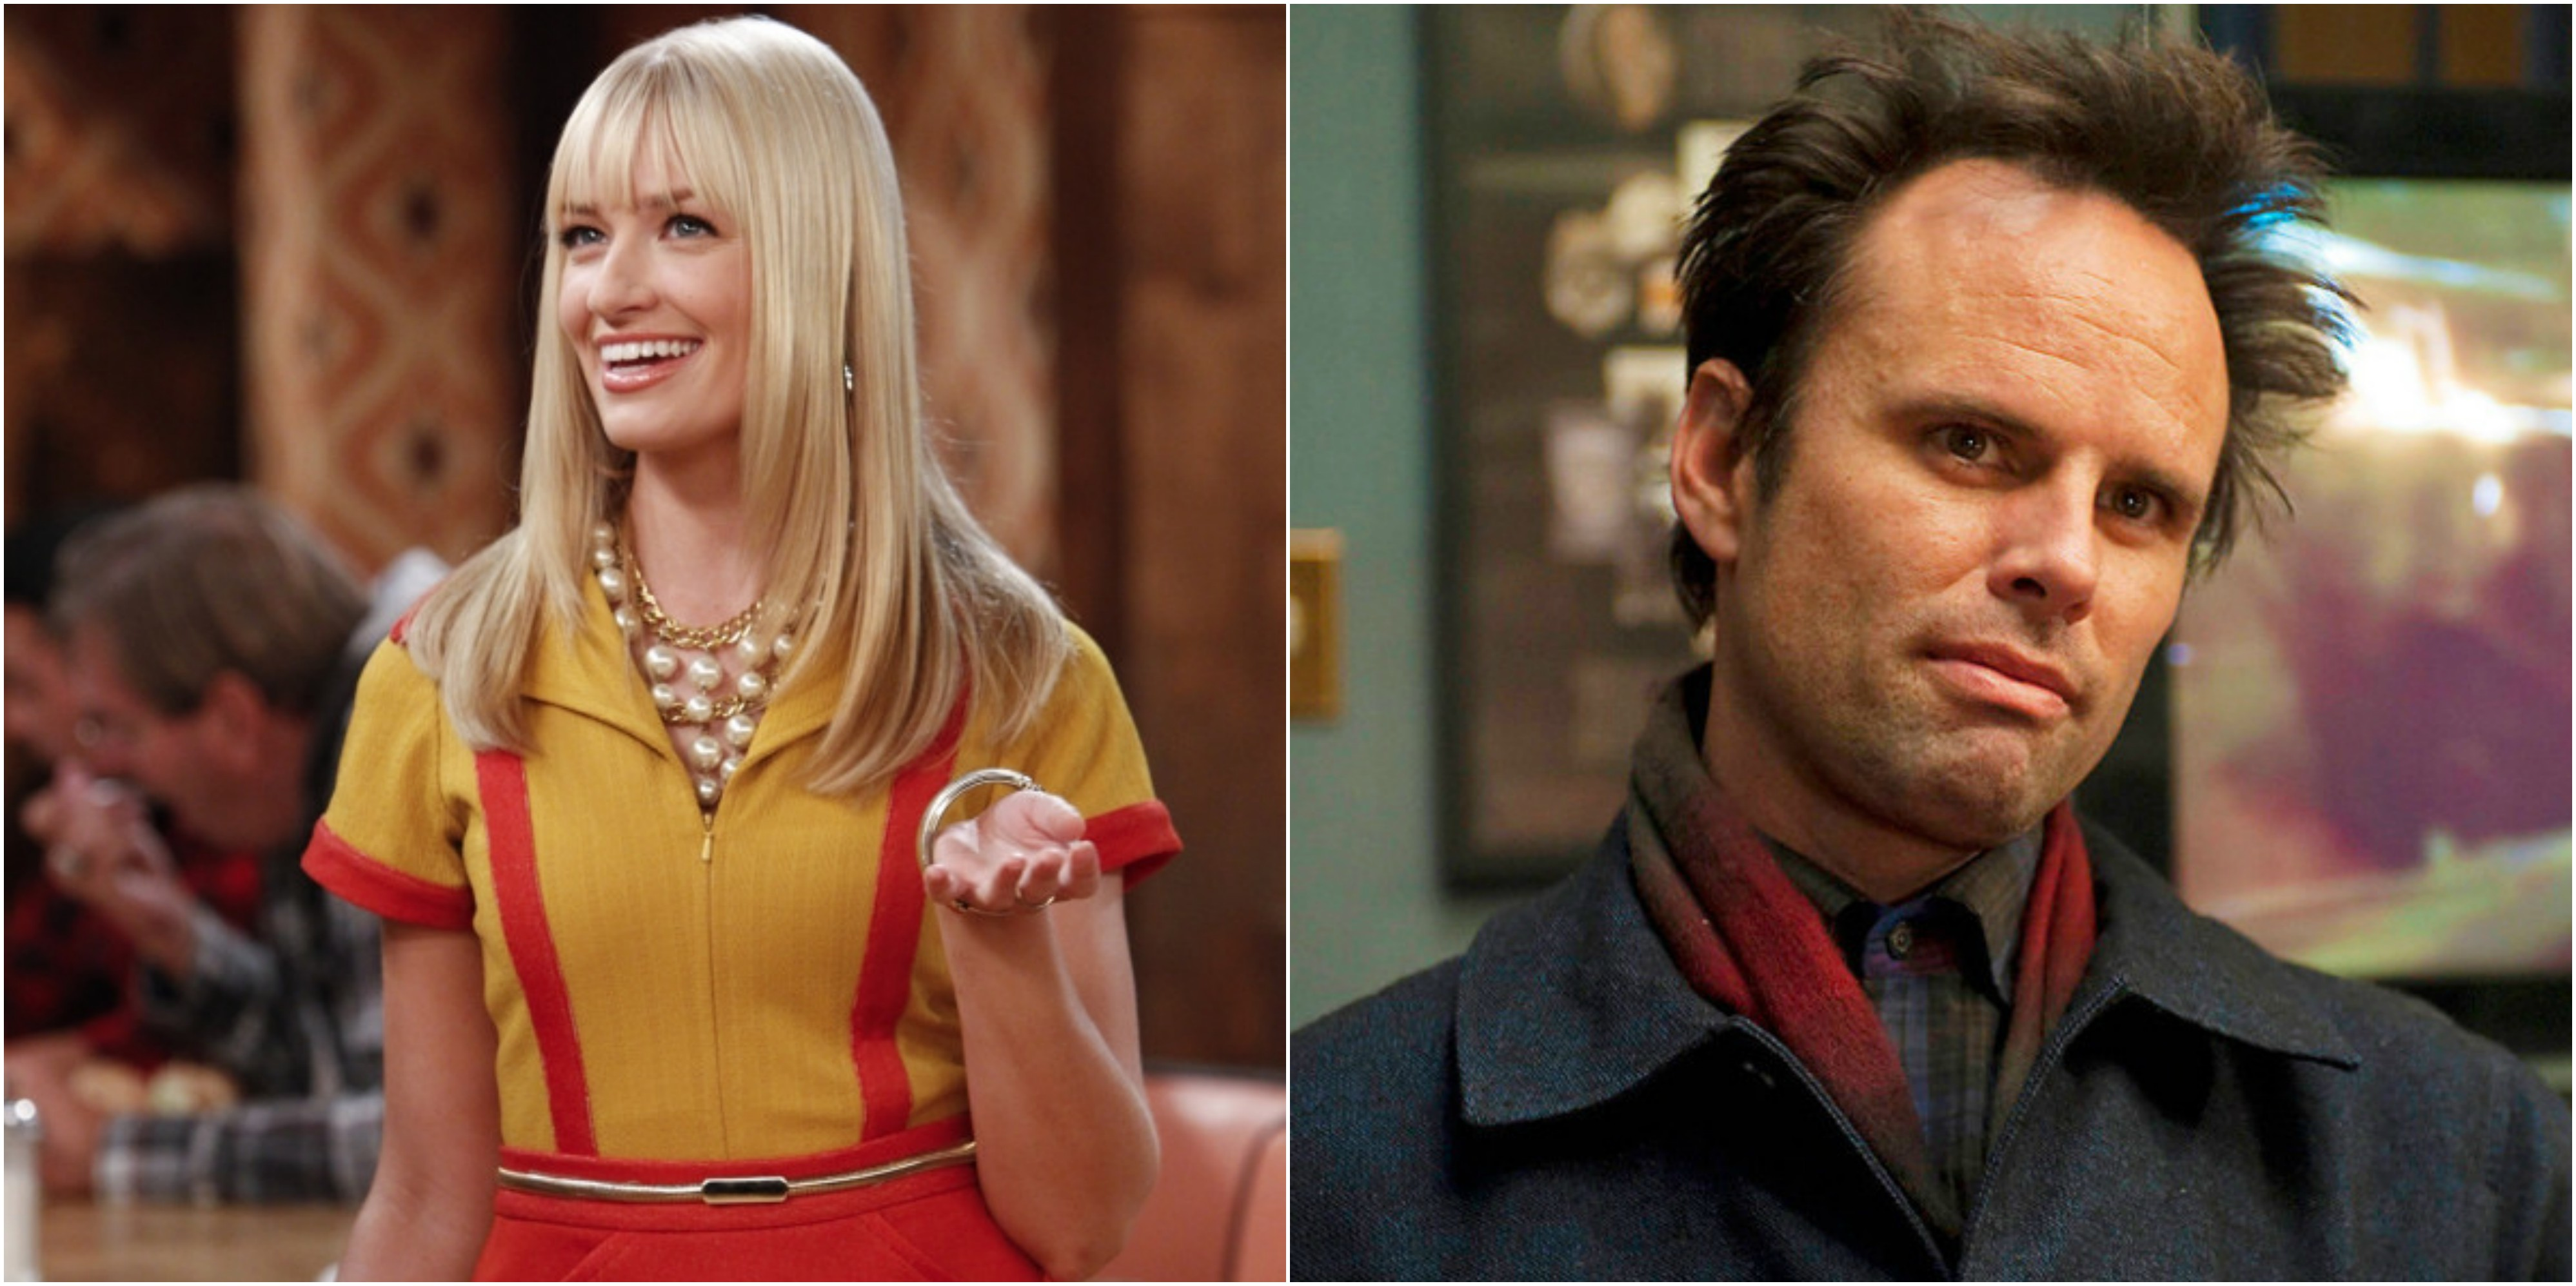 Beth Behrs En Walton Goggins Te Zien In Gastrollen In The Big Bang